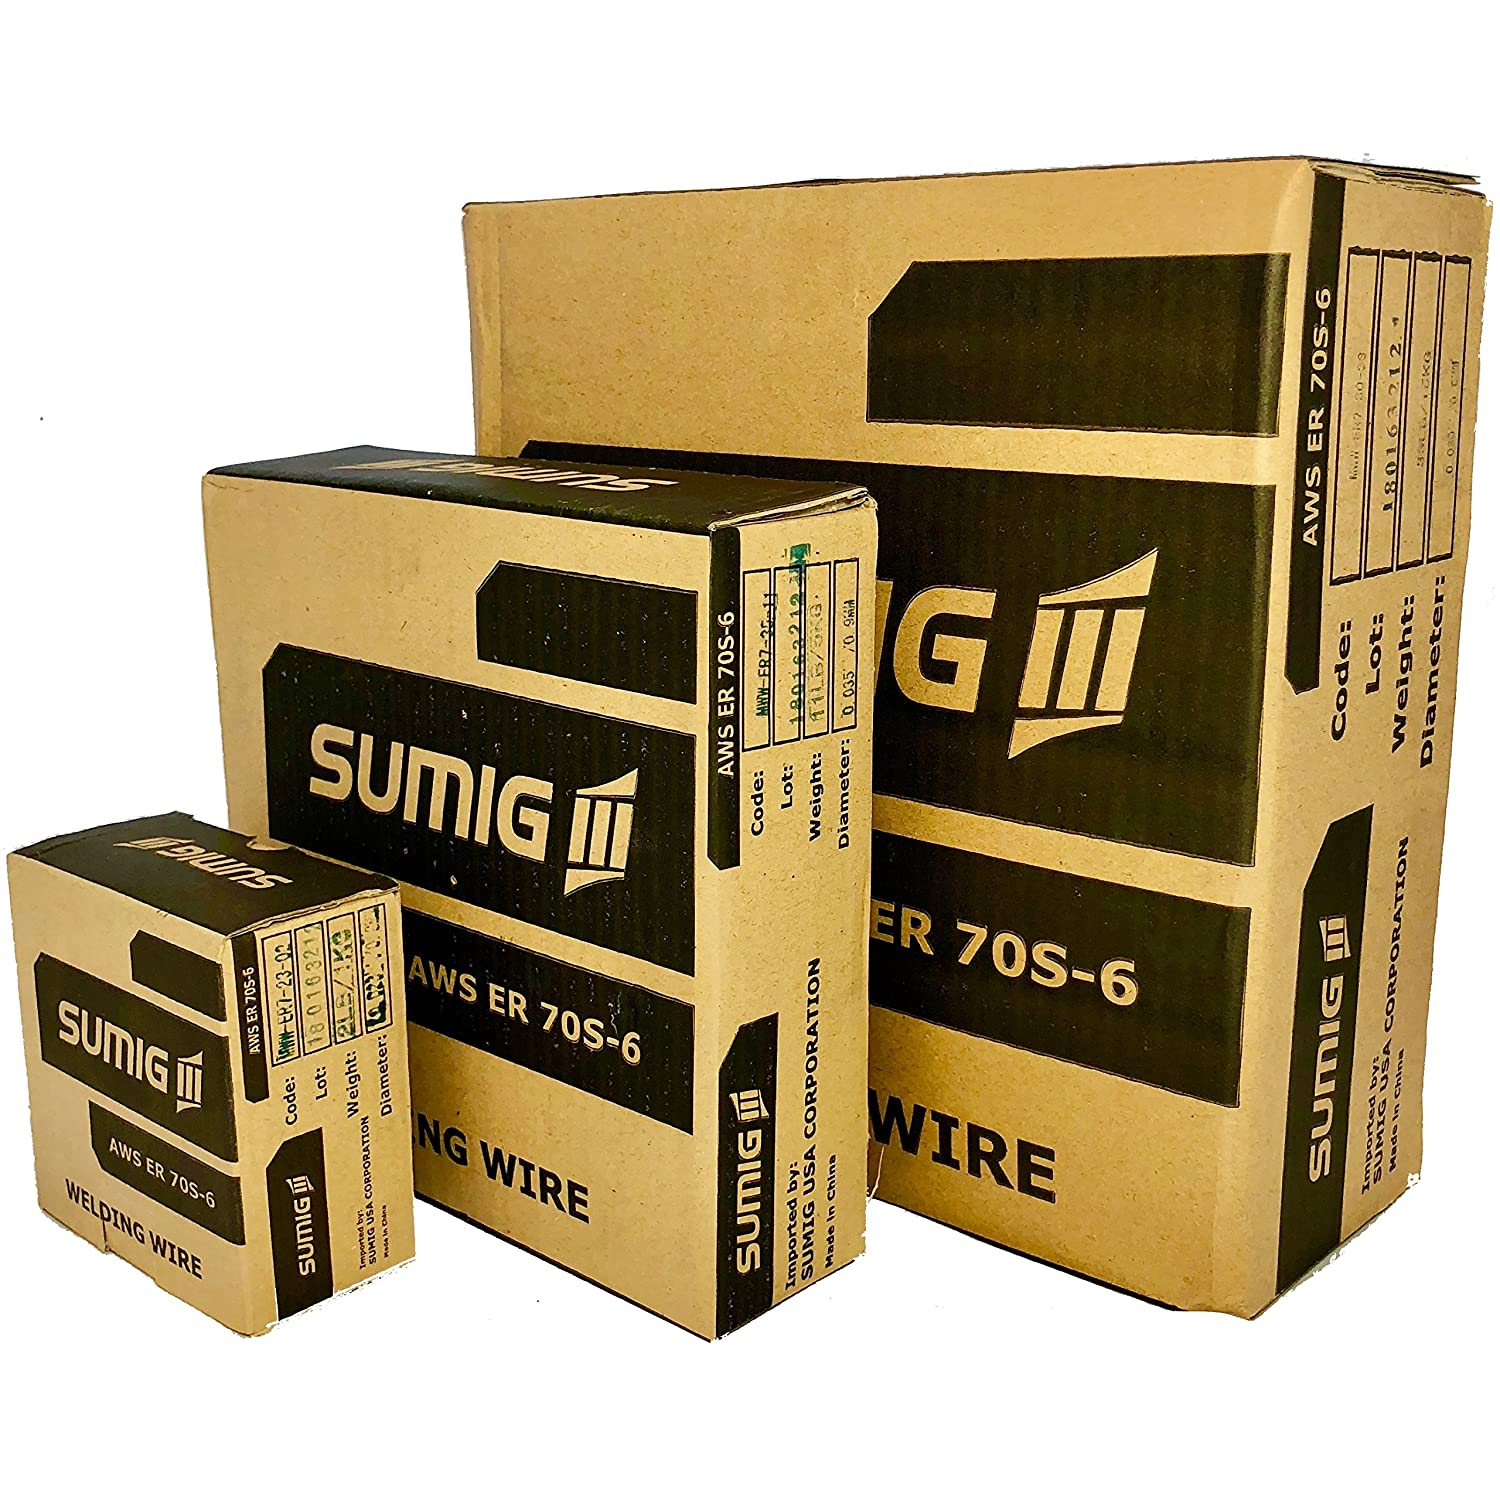 MIG WELDING WIRE CARBON STEEL ER70S-6 AWS A5.18 11lb (5kg) 0.035' (0.9mm) Sumig